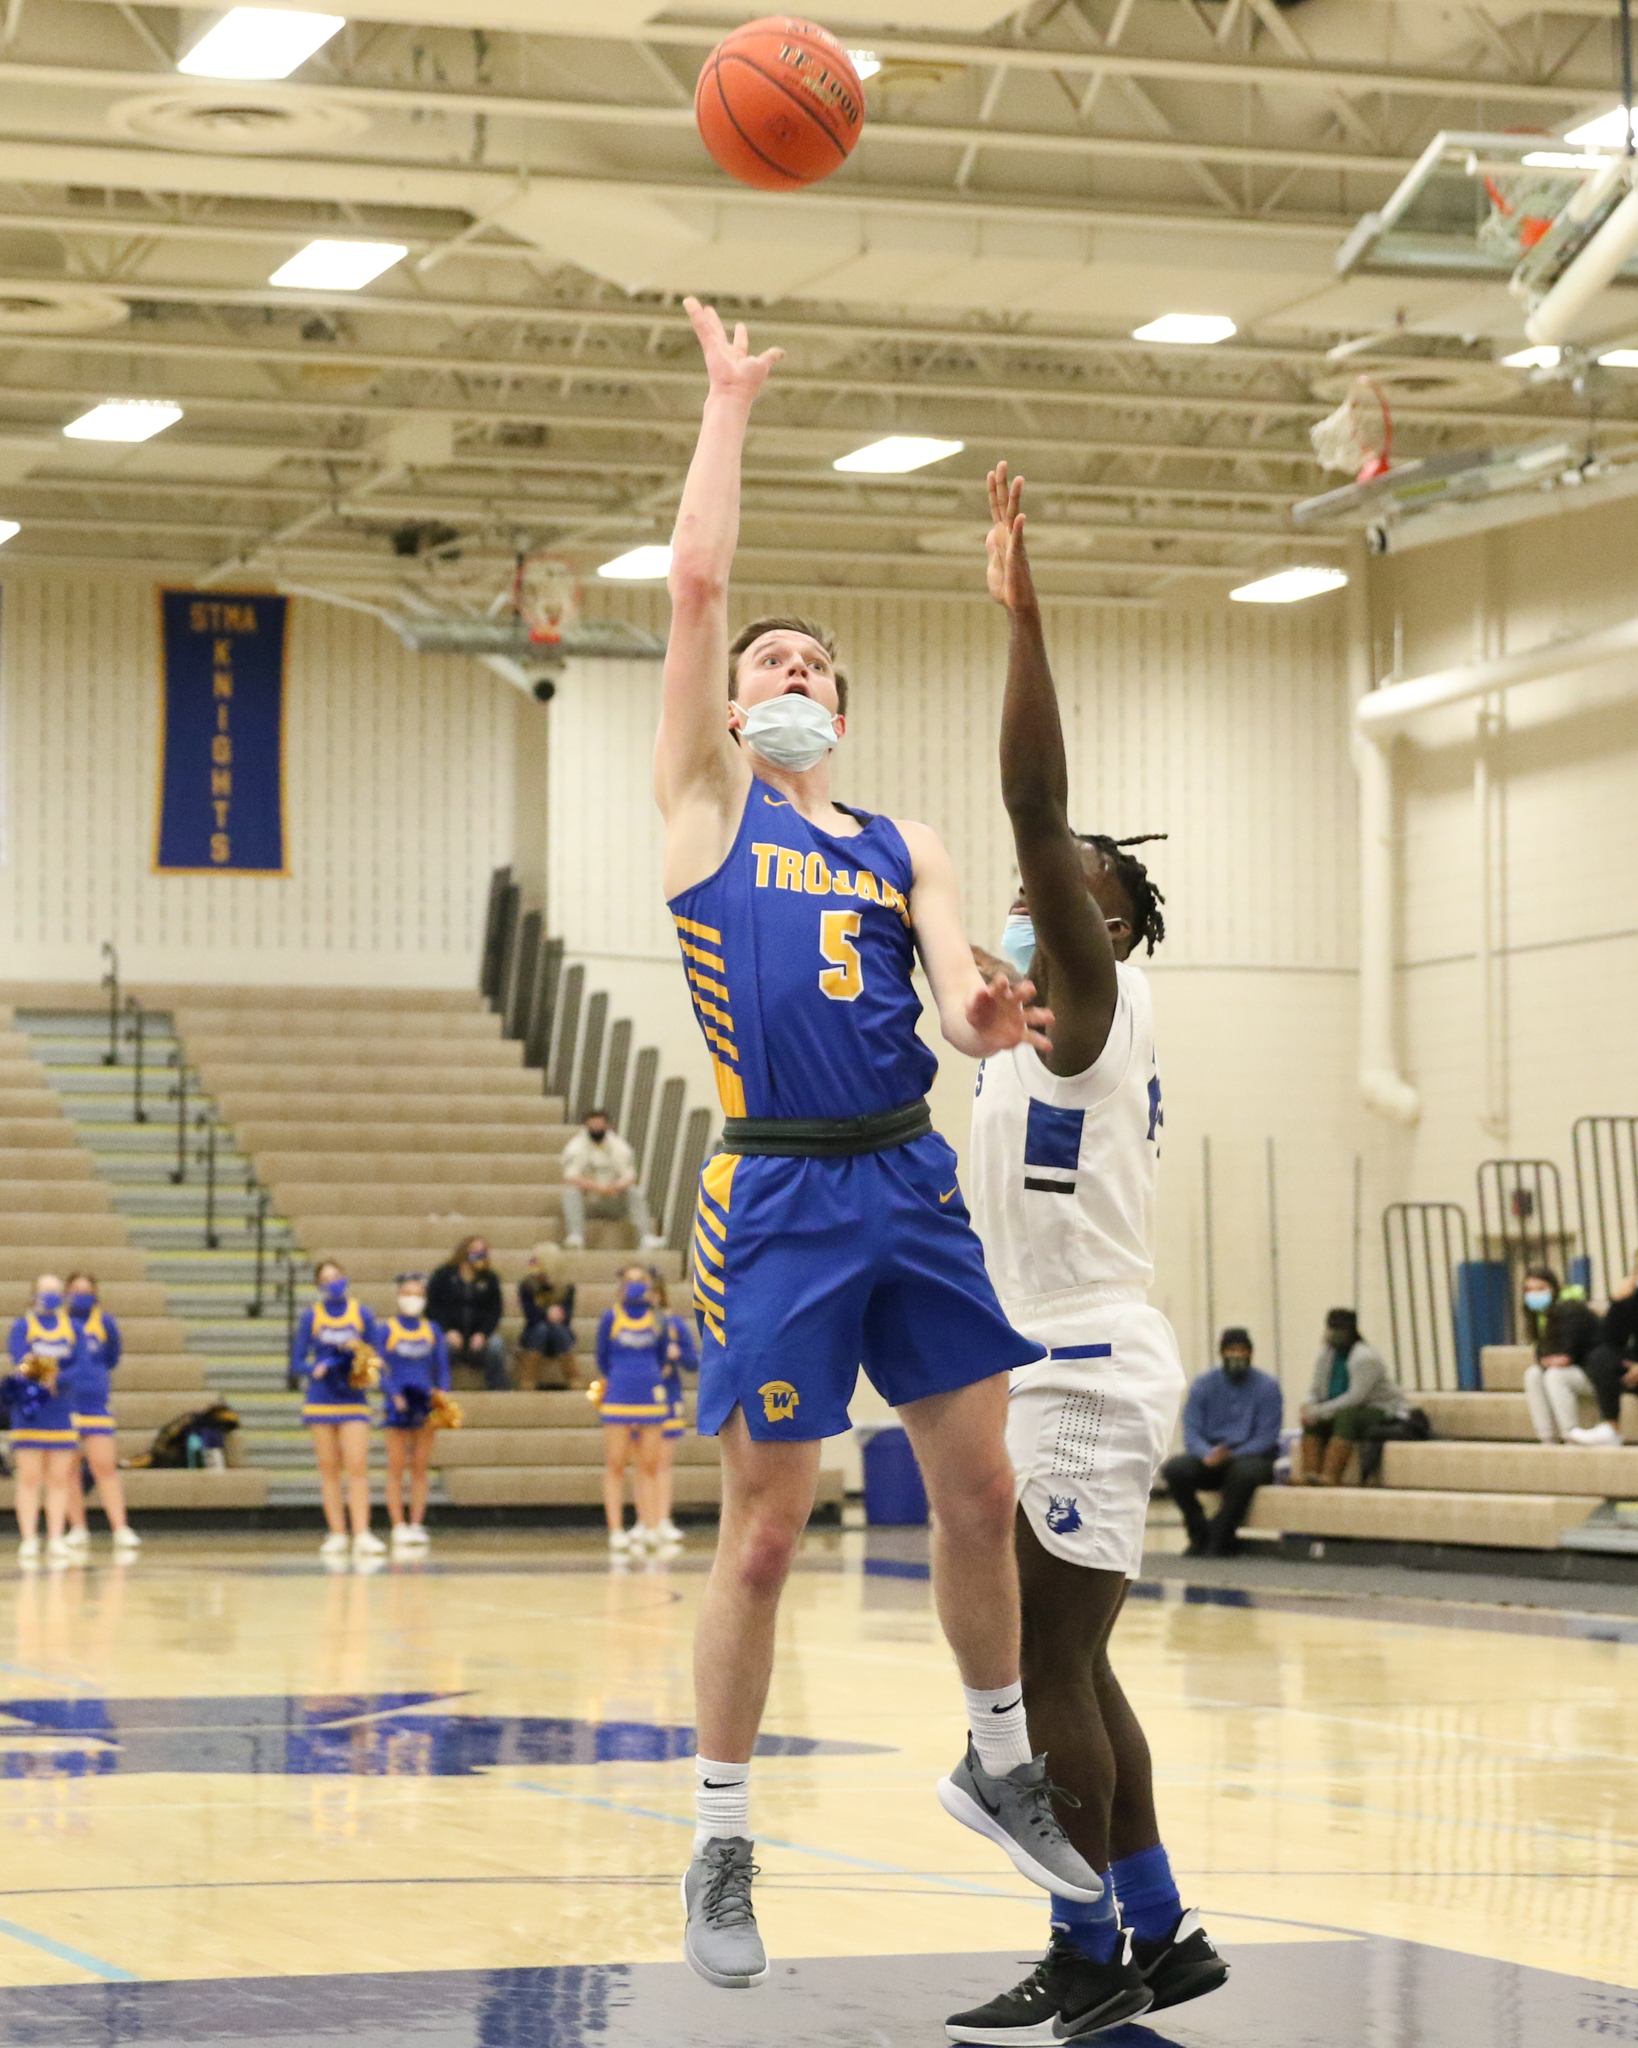 Wayzata's Eddie Beeninga (5) watches his one-handed put back against Hopkins Friday night. Beeninga finished with 13 points in the Trojans' 68-60 Lake Conference victory over the Royals in Wayzata. Photo by Jeff Lawler, SportsEngine